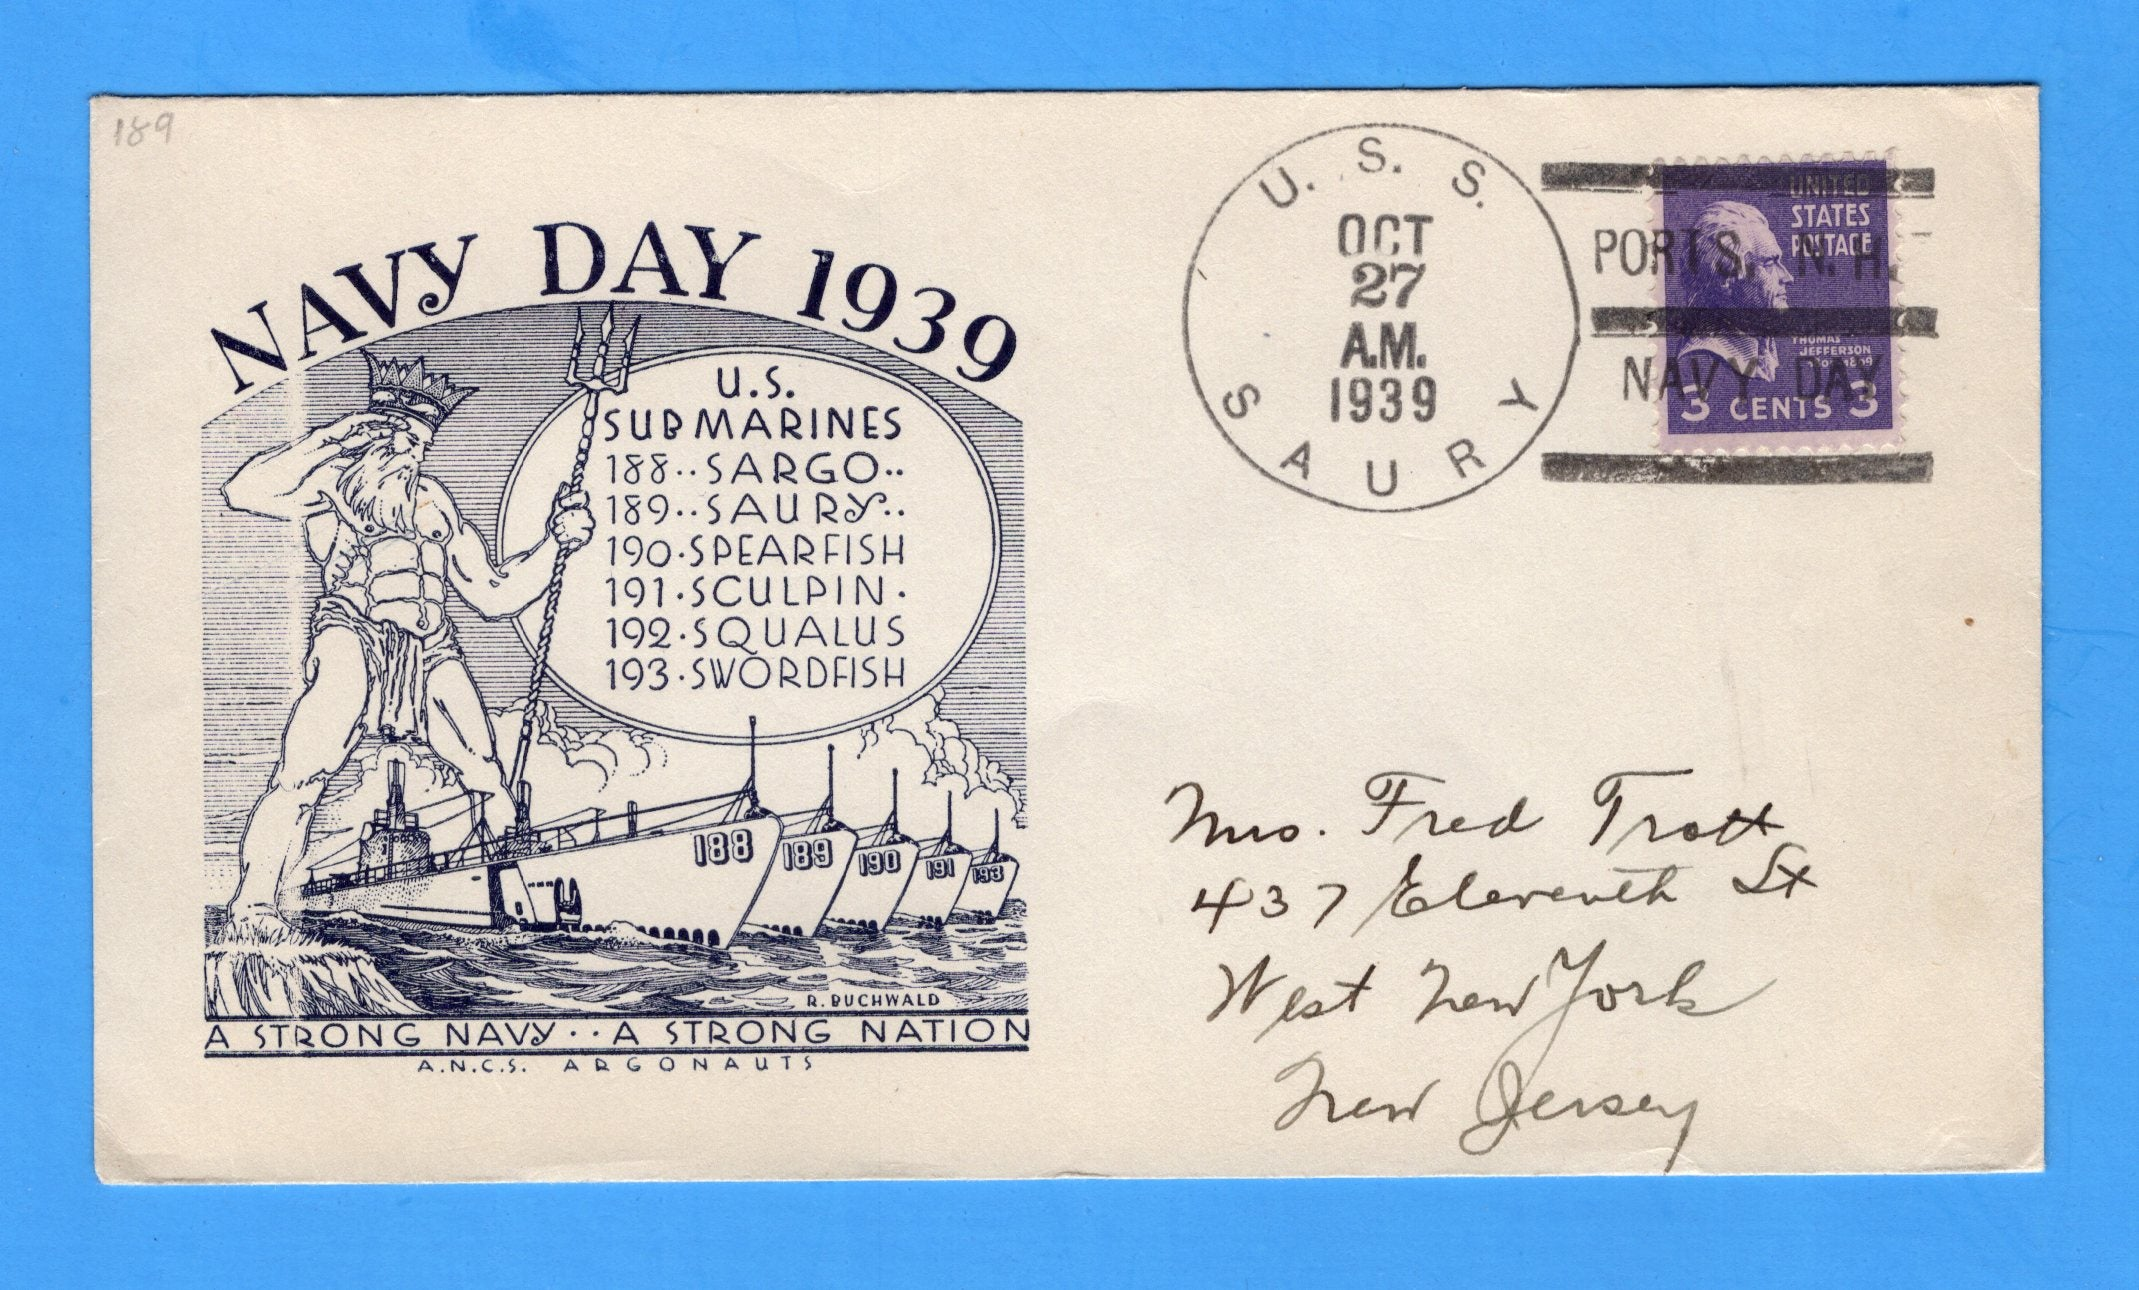 USS Saury SS-189 Navy Day October 27, 1939